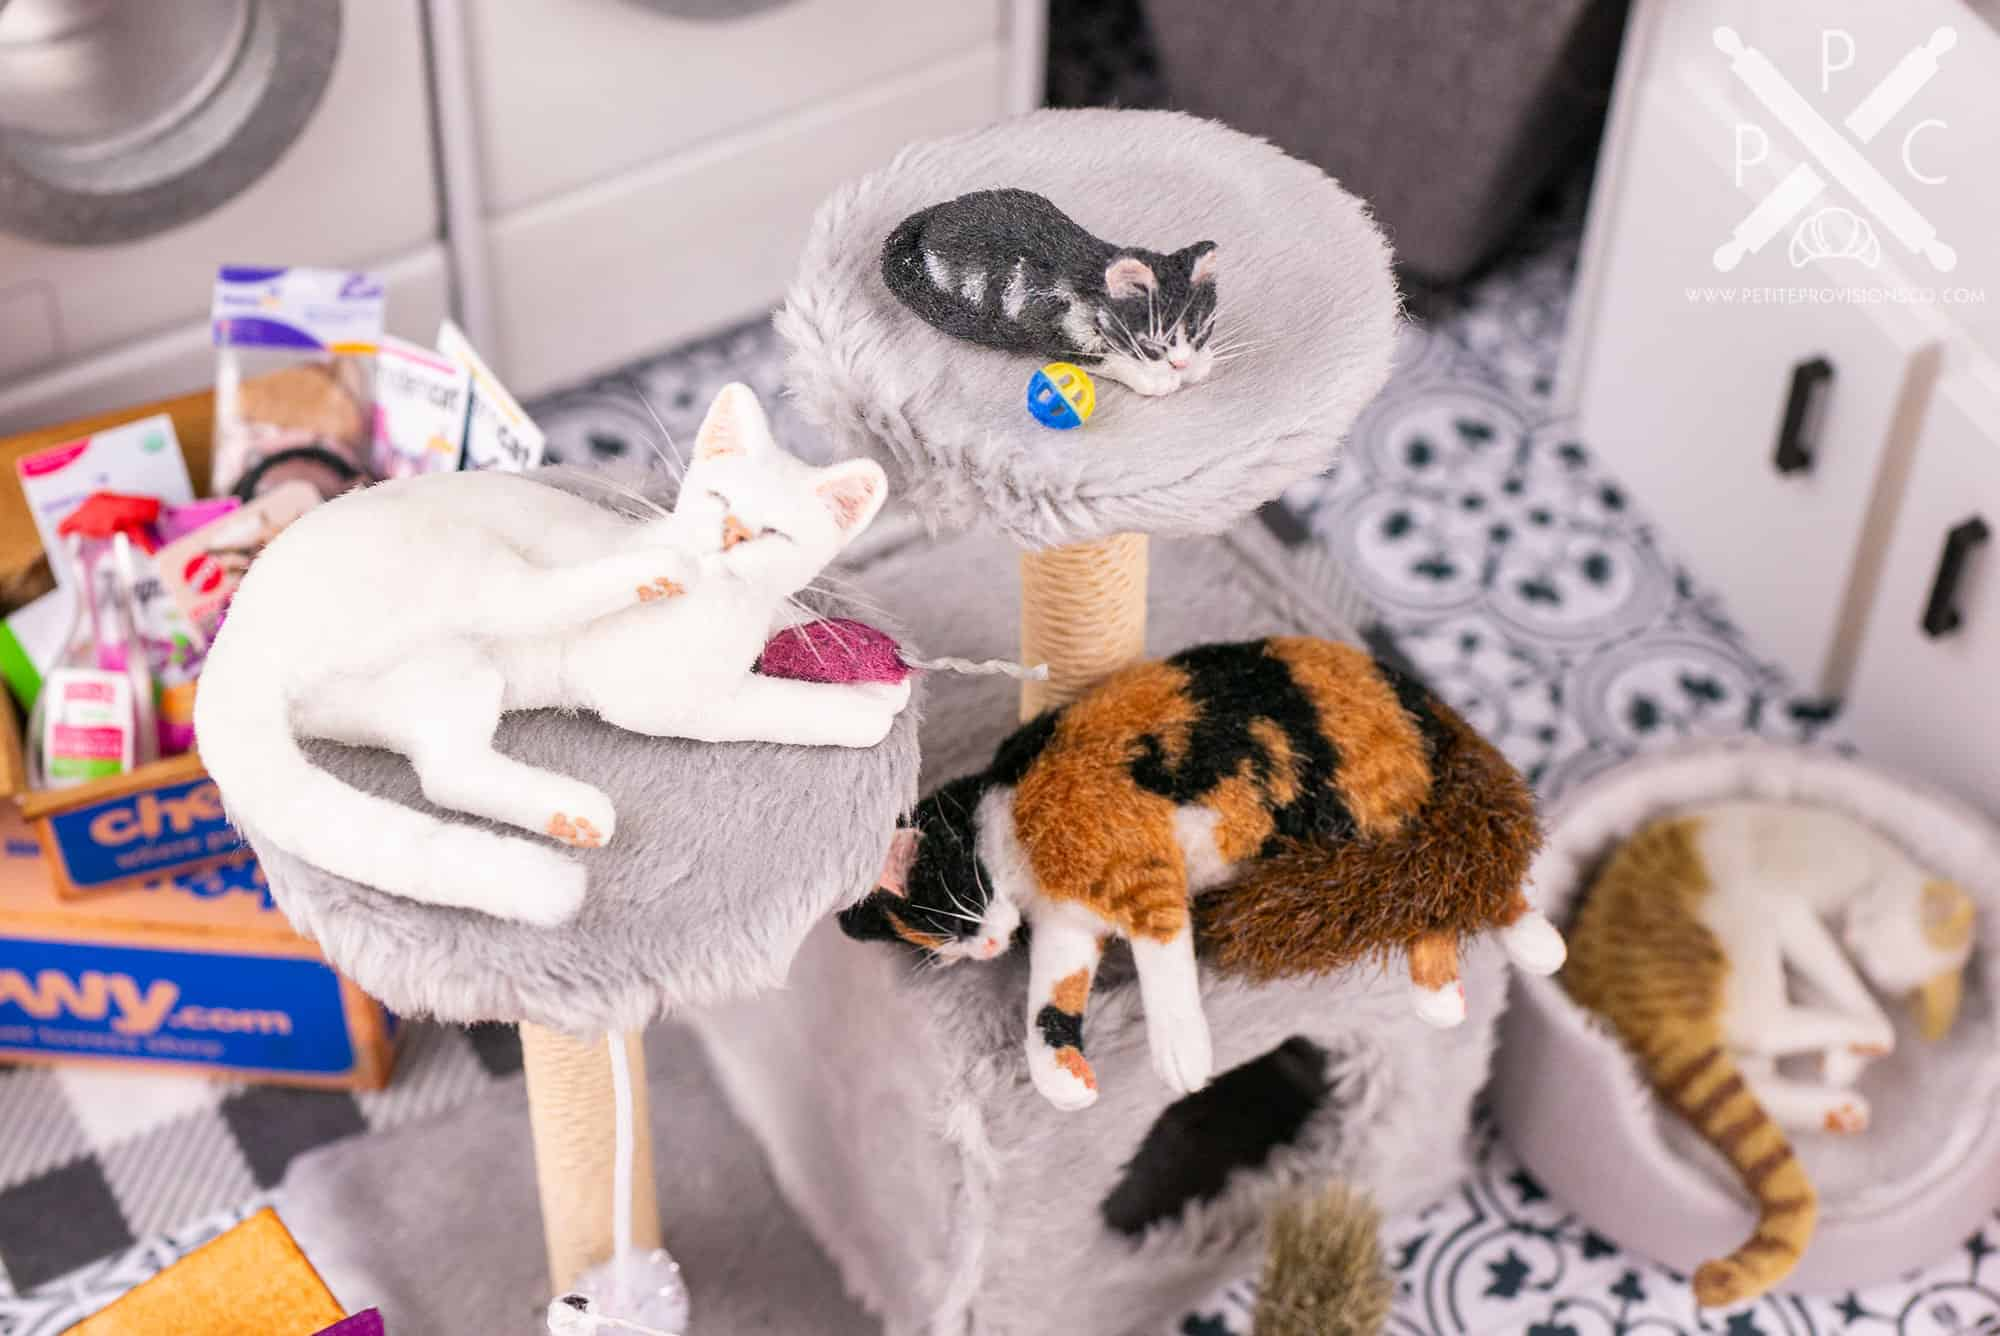 1/12 scale cats and kittens sleeping on a handmade cat tower with scratching posts in a dollhouse miniature scene by Erika Pitera, The Petite Provisions Co.